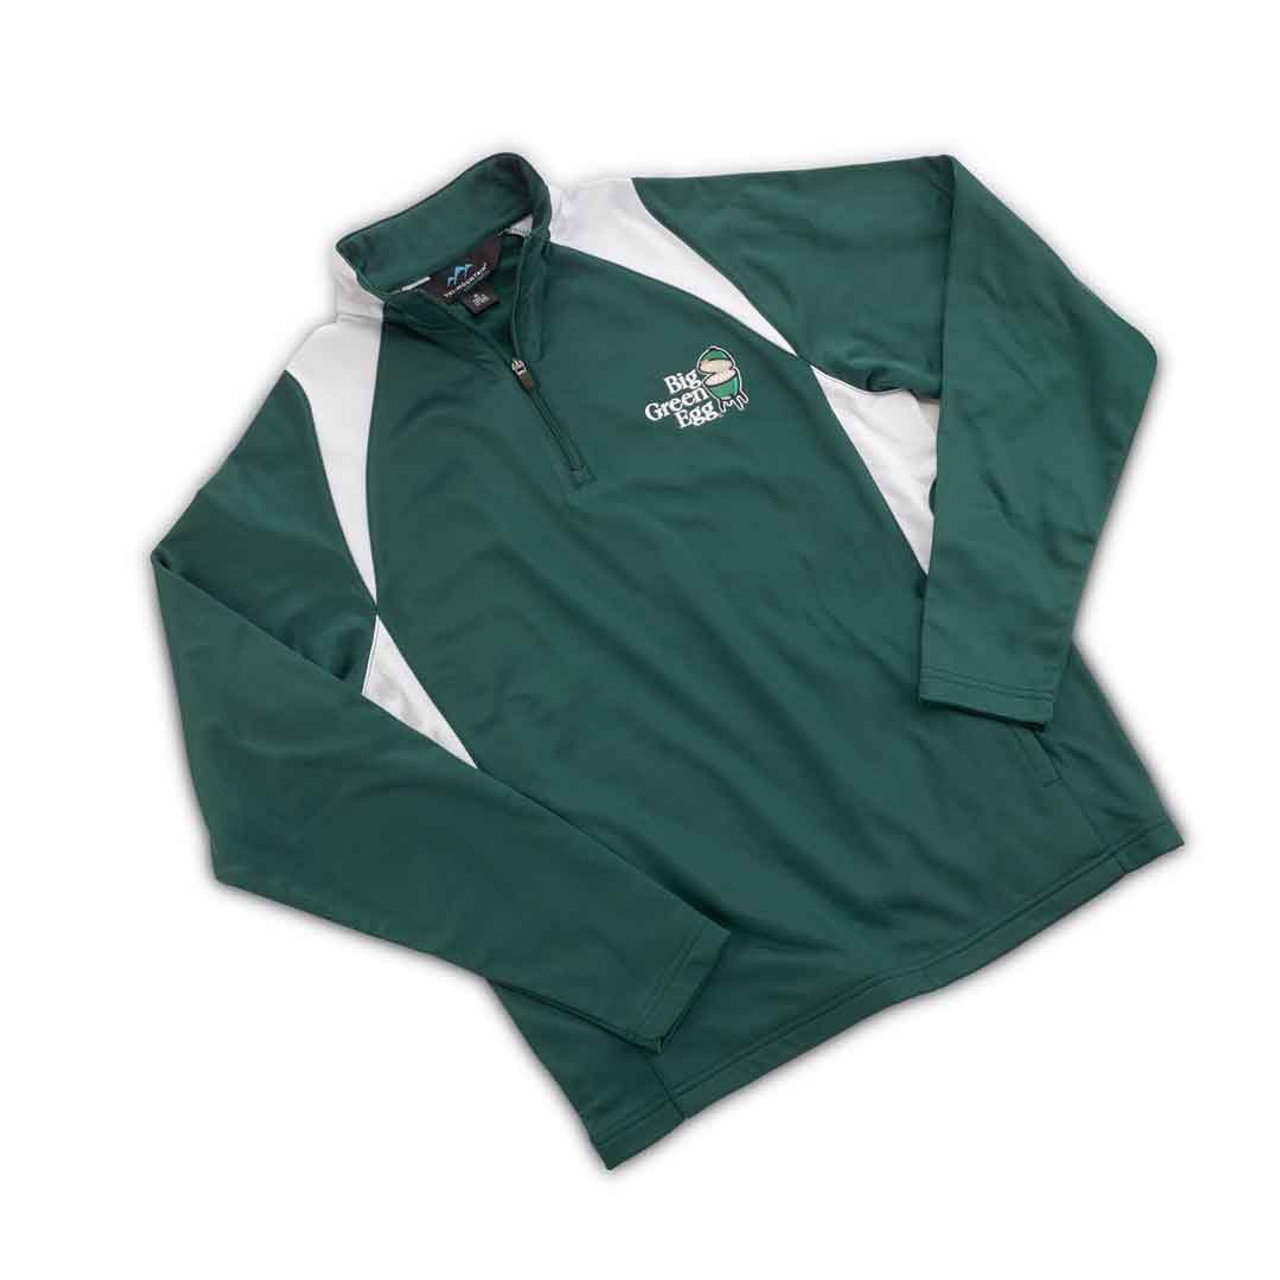 Green and white Big Green Egg pullover quarter-zip jacket